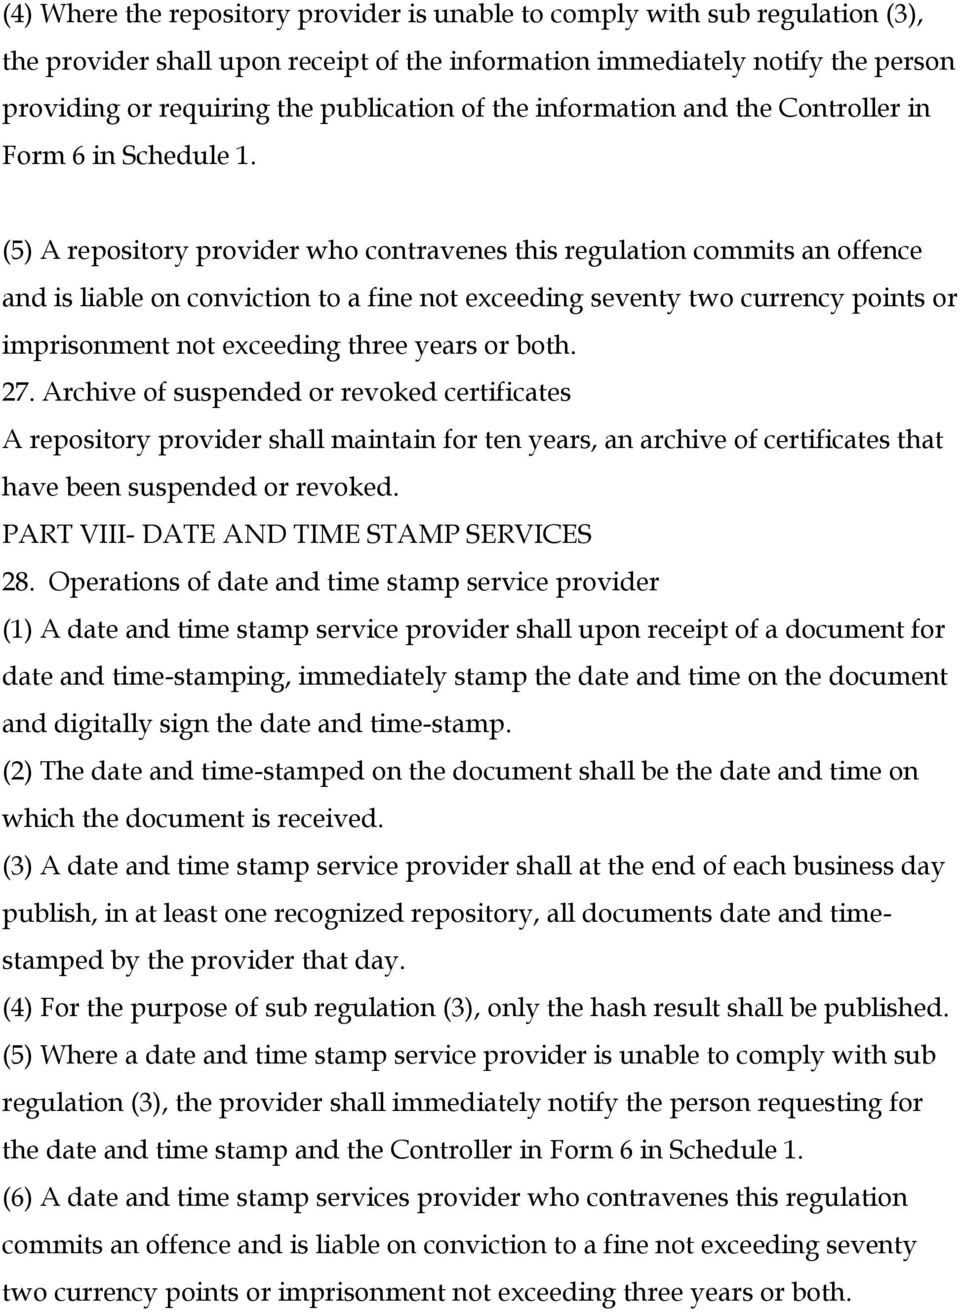 (5) A repository provider who contravenes this regulation commits an offence and is liable on conviction to a fine not exceeding seventy two currency points or imprisonment not exceeding three years